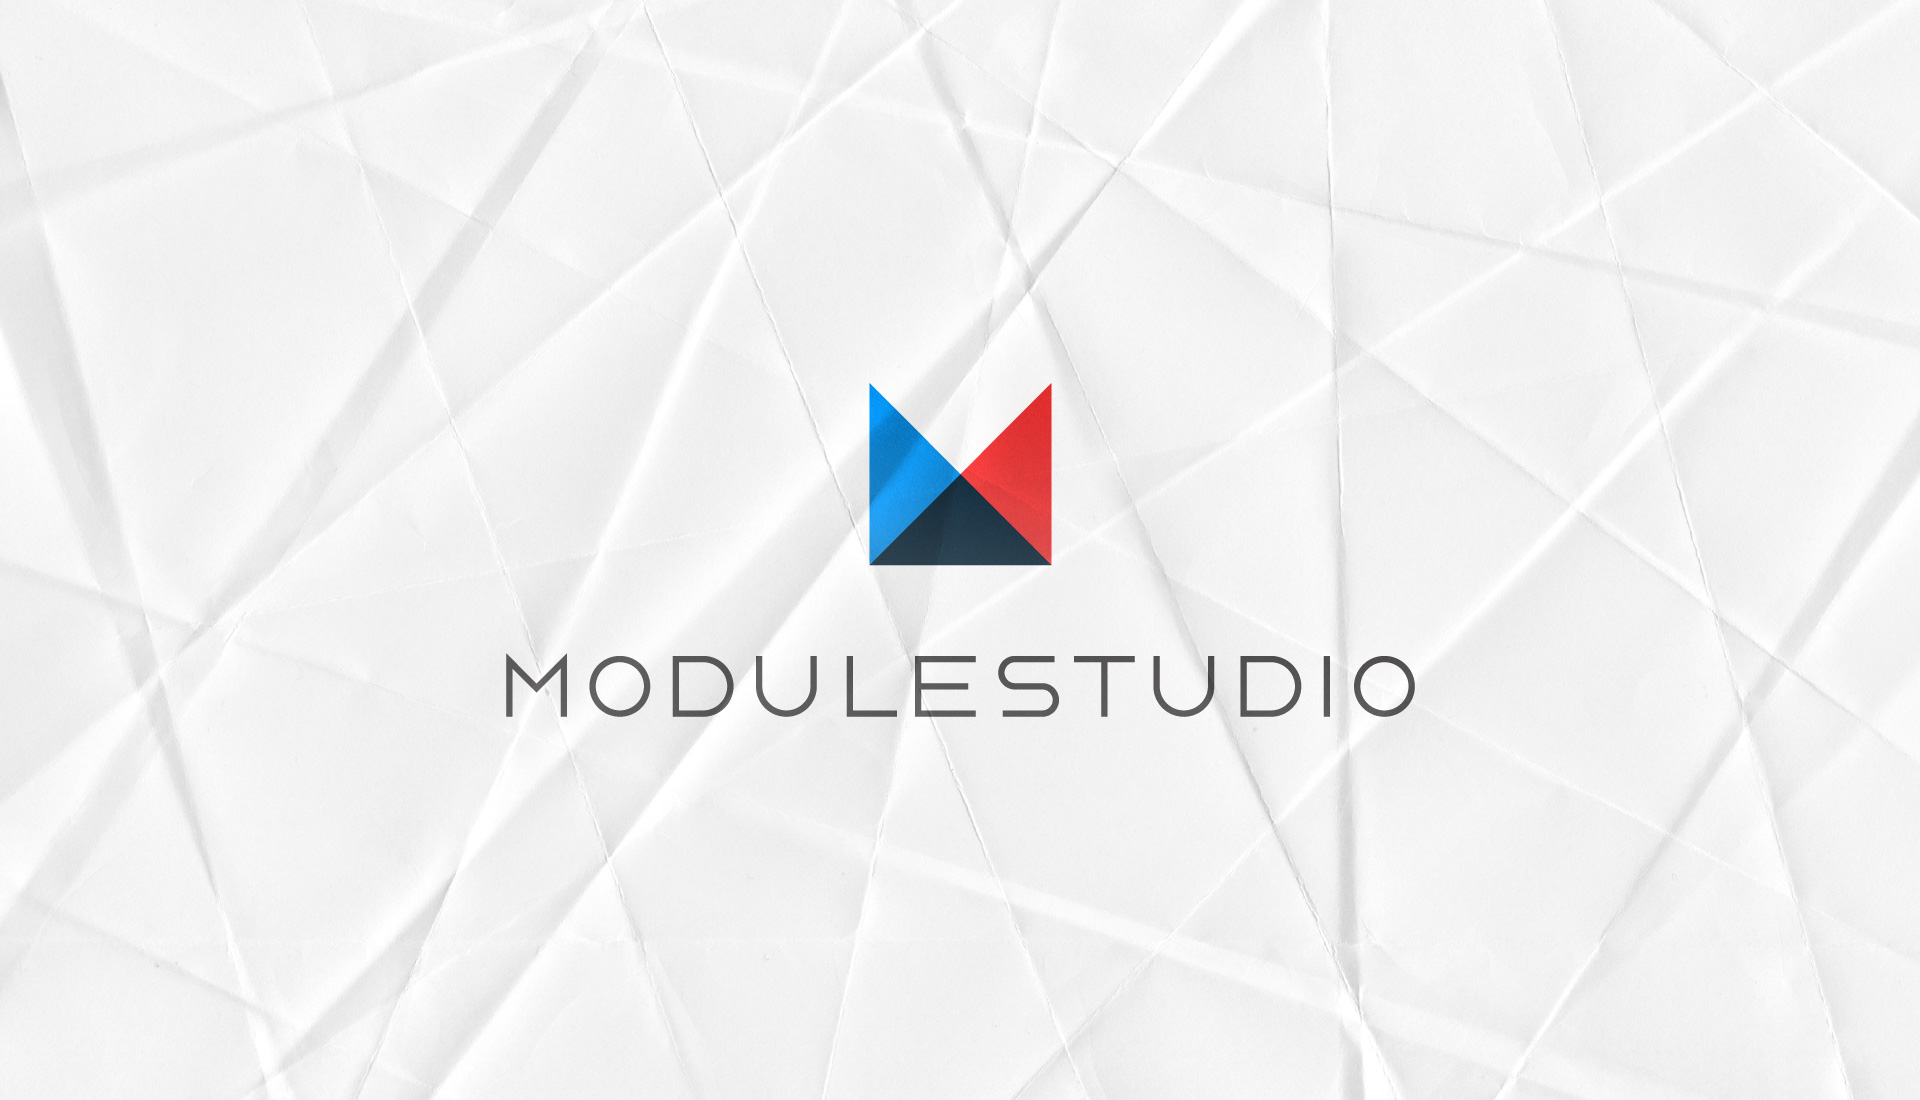 ModuleStudio 0.7.1 has been released